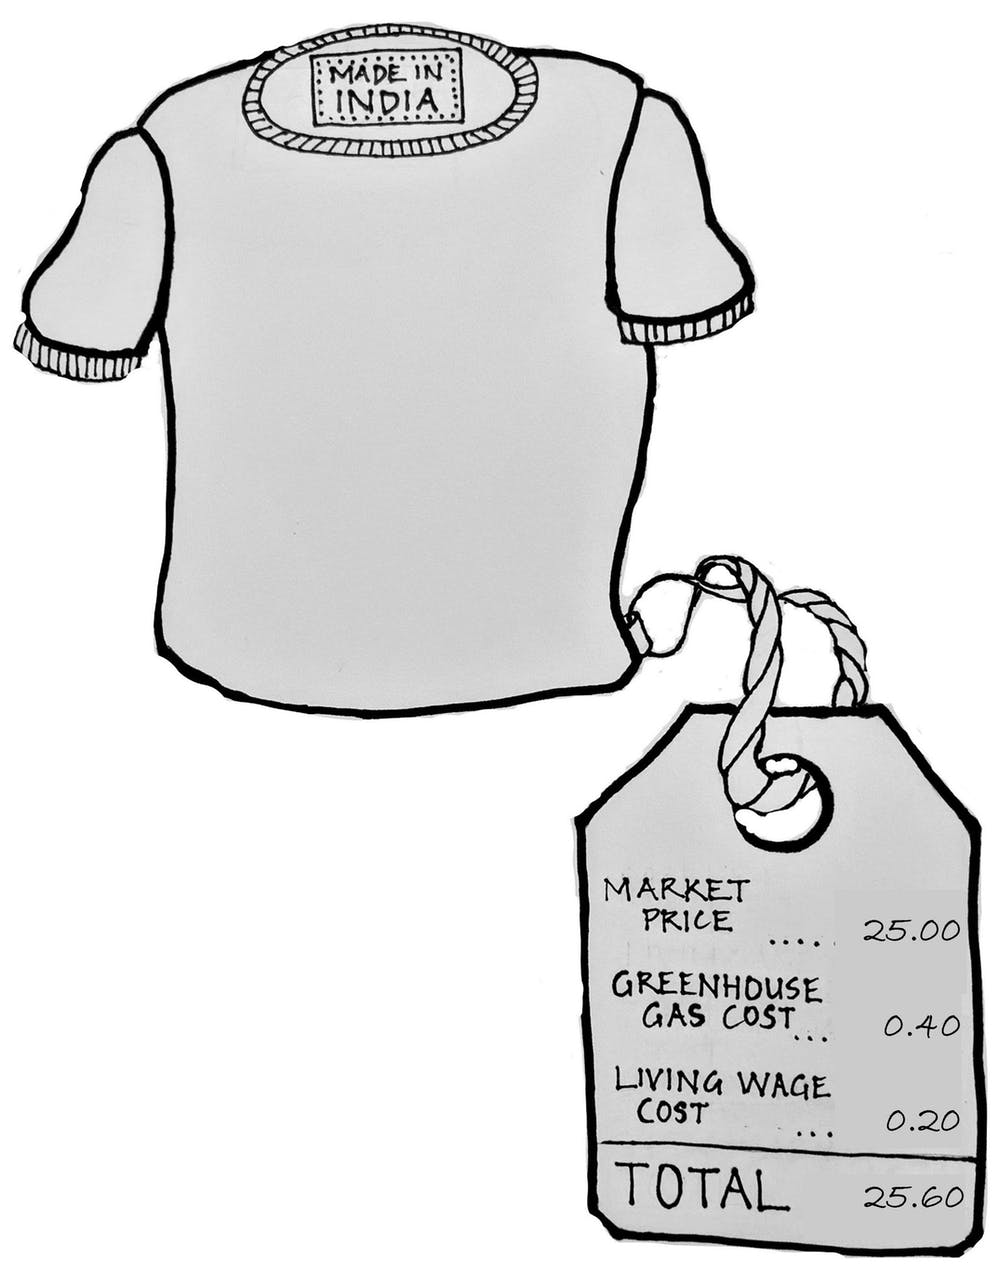 It would cost you 20 cents more per T-shirt to pay an Indian worker